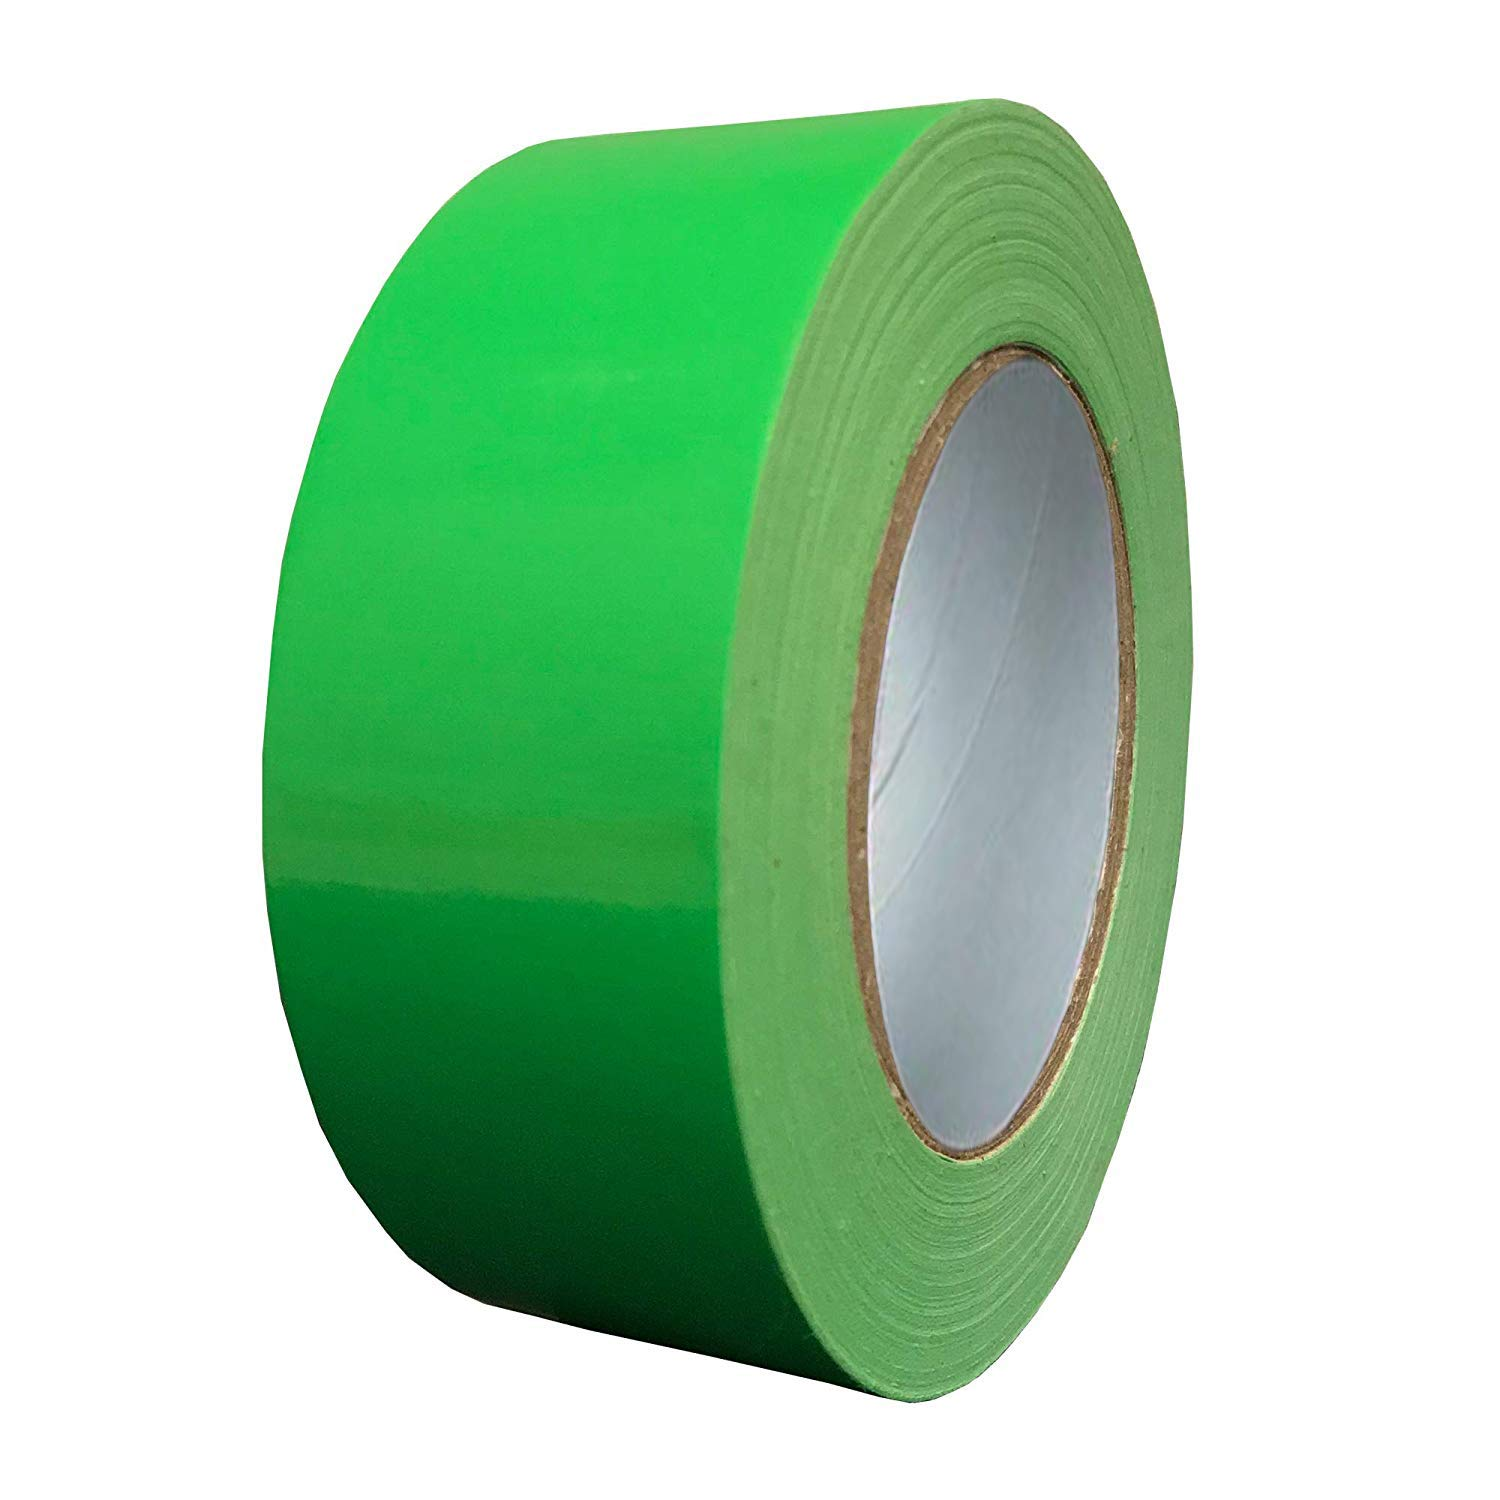 Exa Duct Tape 1.88 Inches x 60 Yards, Duct Tape for Crafts, Extra Strength, No Residue, DIY, Repairs, Indoor Outdoor Use, Book Repair, Must Have Garage Tool (1.88 X 60 Yards, Hi Vis Green)